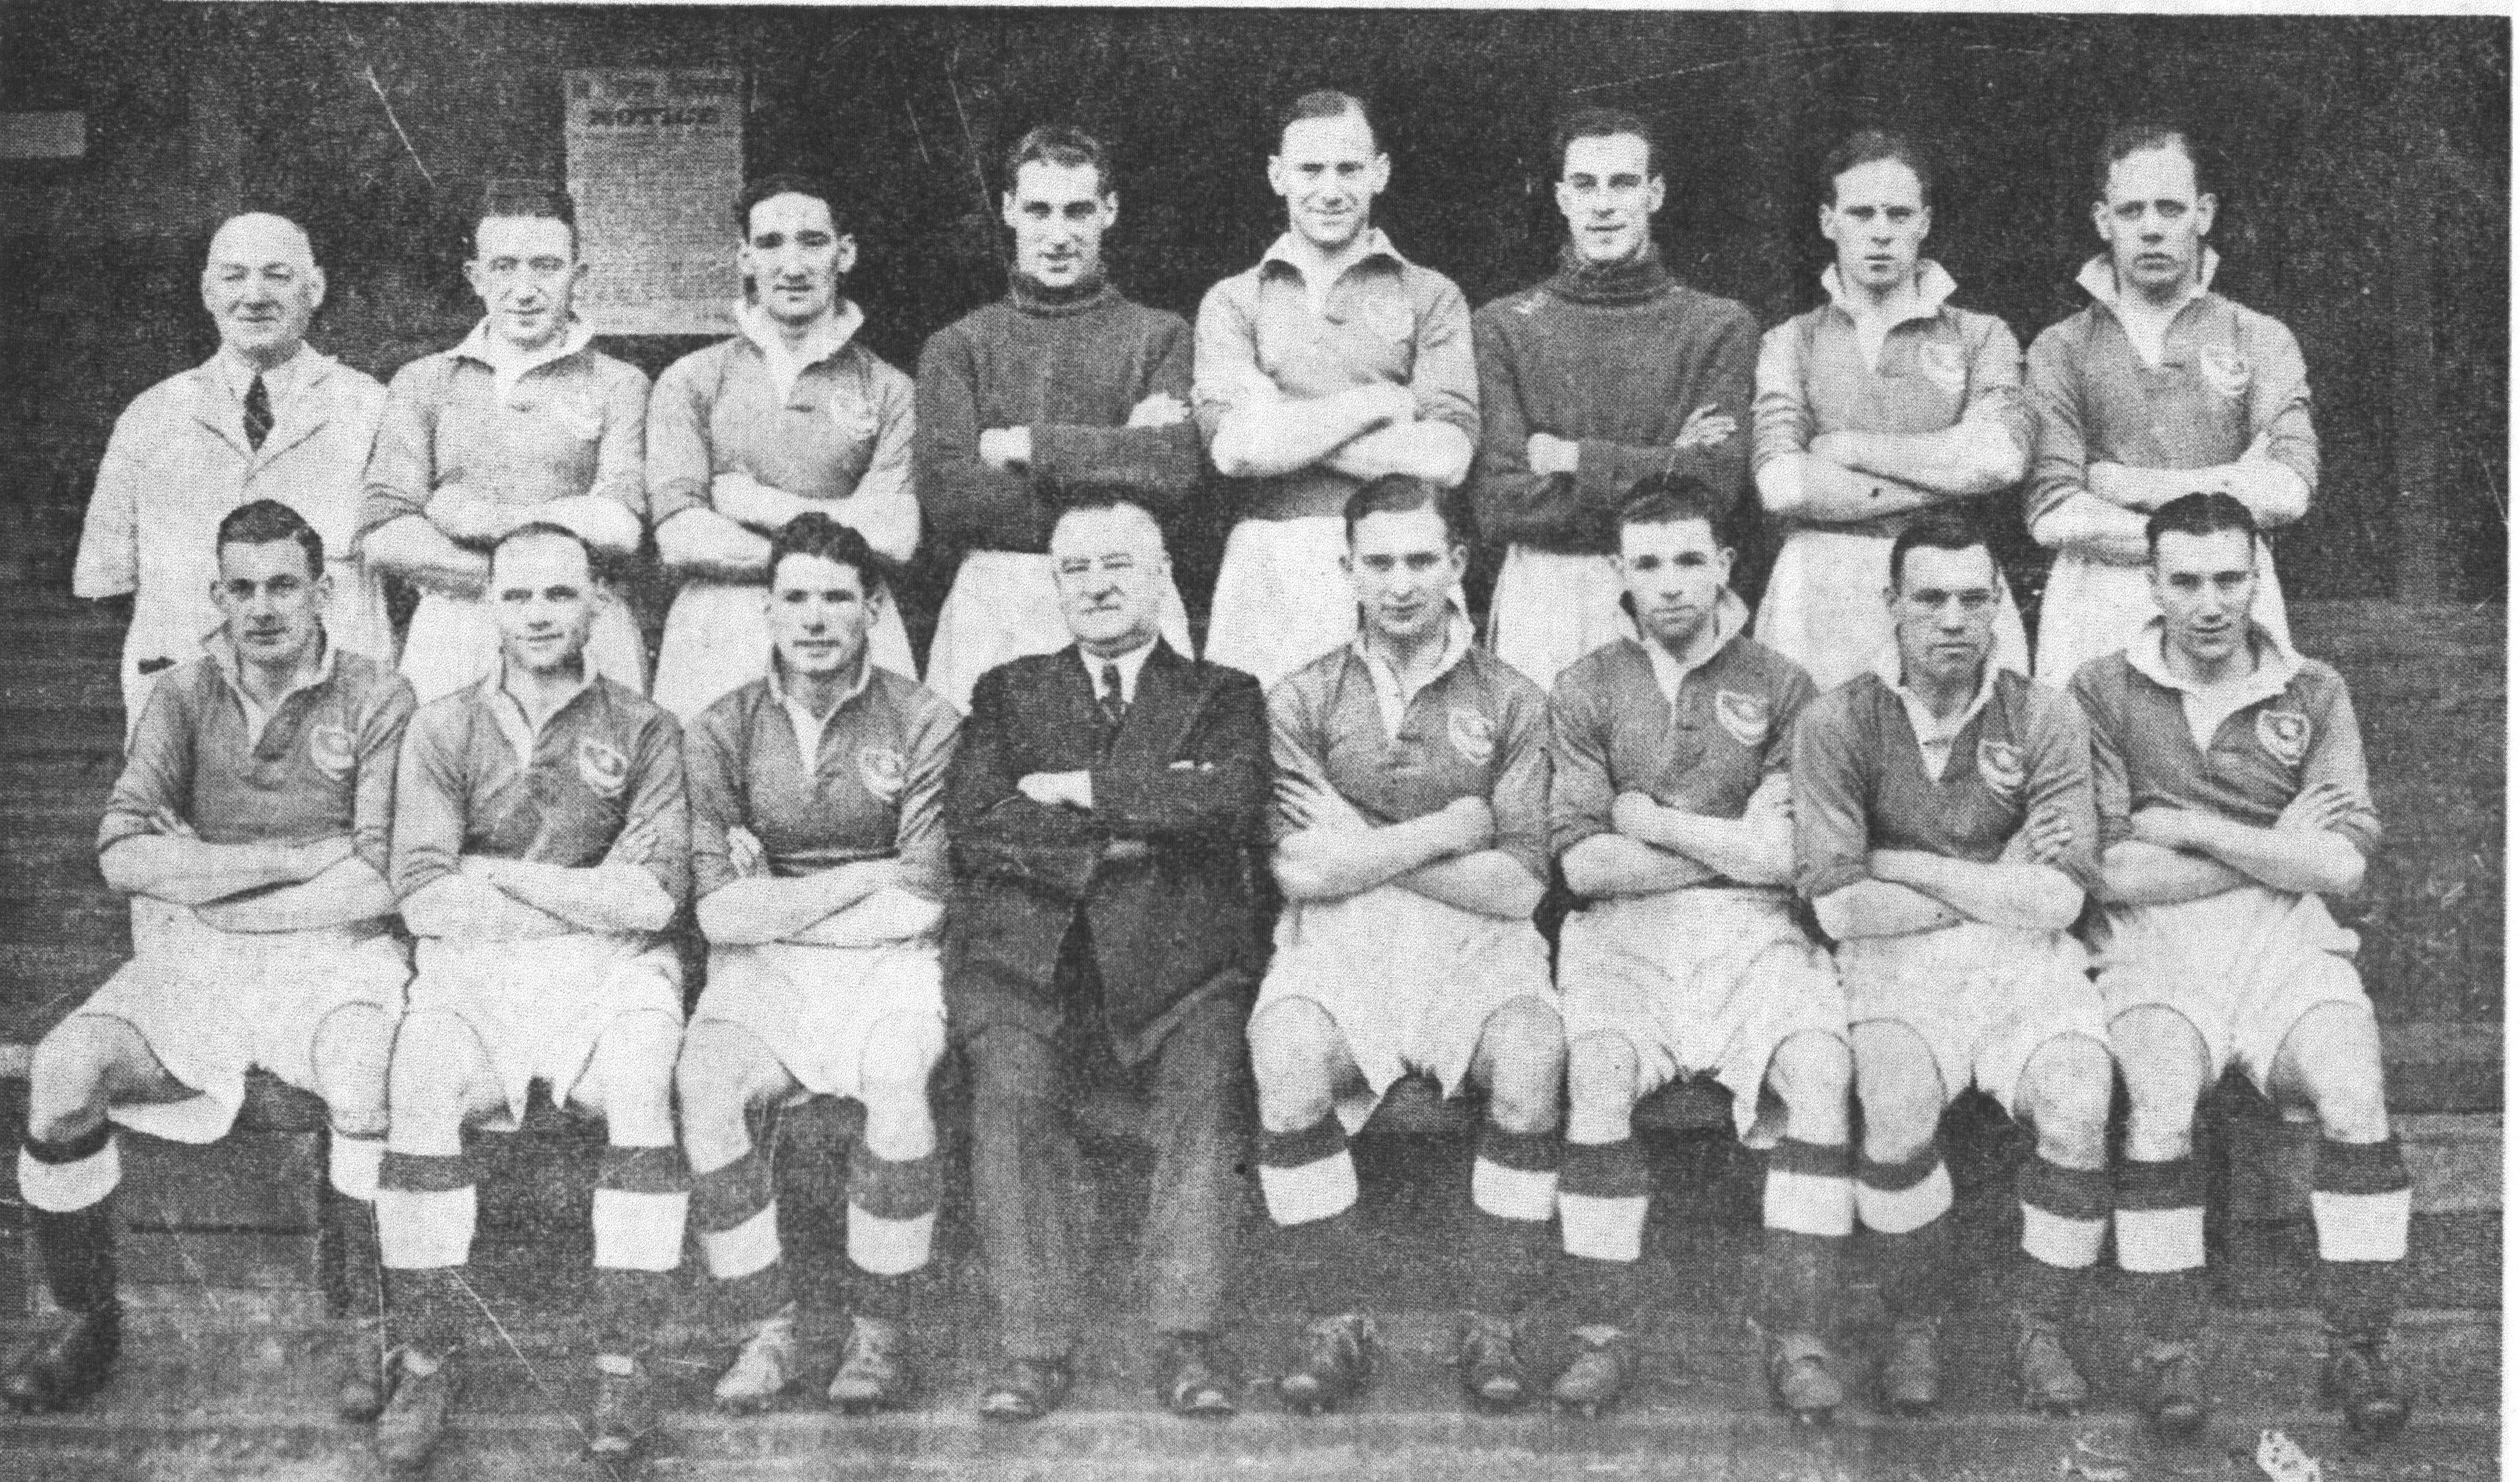 The 1939 Portsmouth team which won the FA Cup against the odds